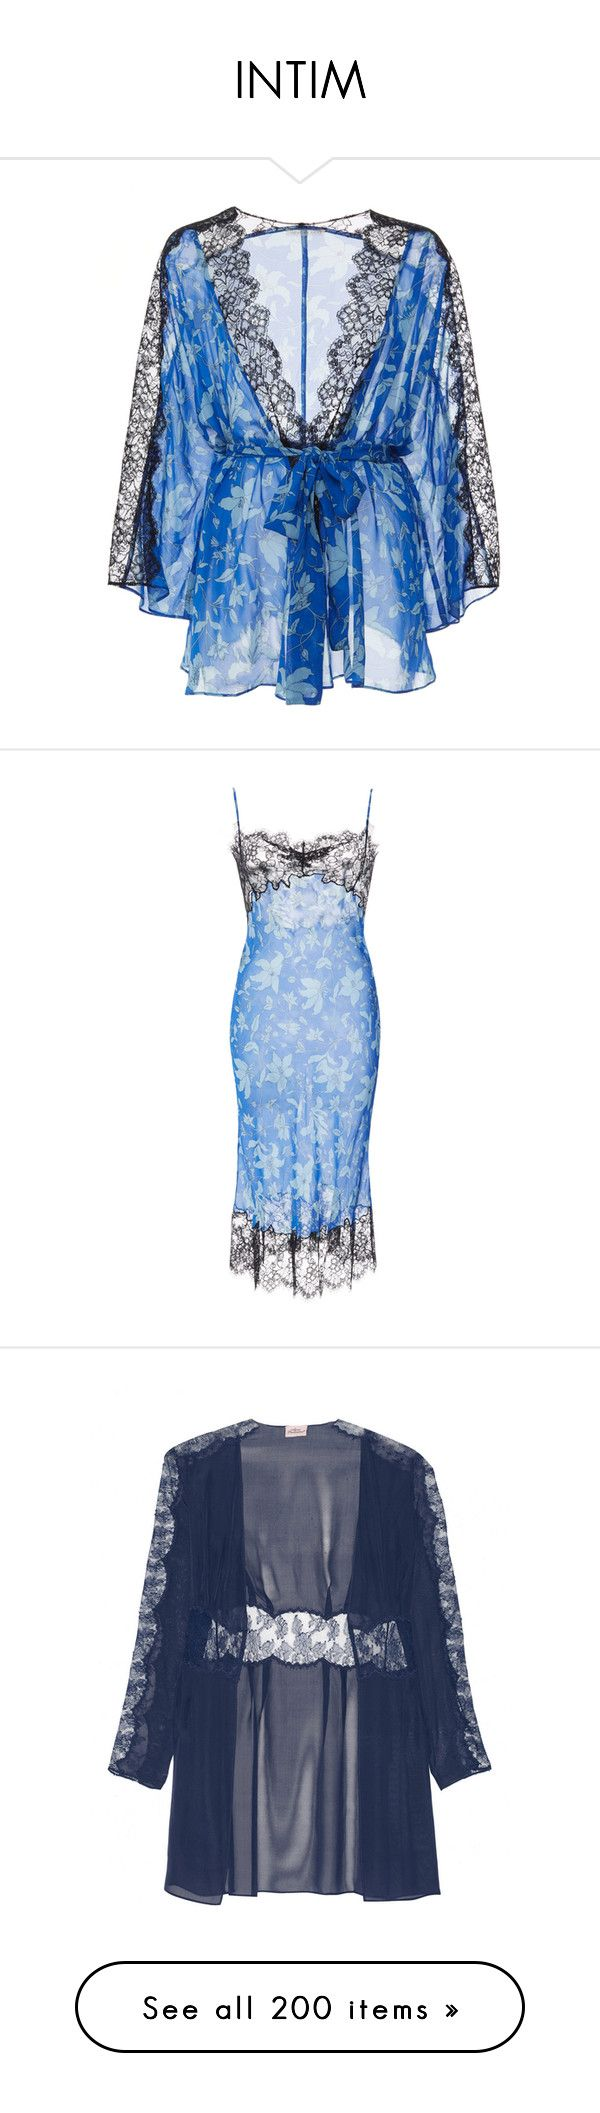 INTIM by saltless on Polyvore featuring polyvore, lingerie, fashion, clothing, intimates, robes, intimate, underwear, floral robe, tie belt, floral print robe, dresses, blue knee length dress, transparent dress, floral print dress, floral lace dress, sheer dress, blue, blue bodysuit, blue slip, blue robe, blue body suit, agent provocateur, shapewear, bodysuit, navy, bras, blue bra, blue lace bra, lace lingerie, agent provocateur bra, panties, blue lingerie, blue lace lingerie, garter belt…